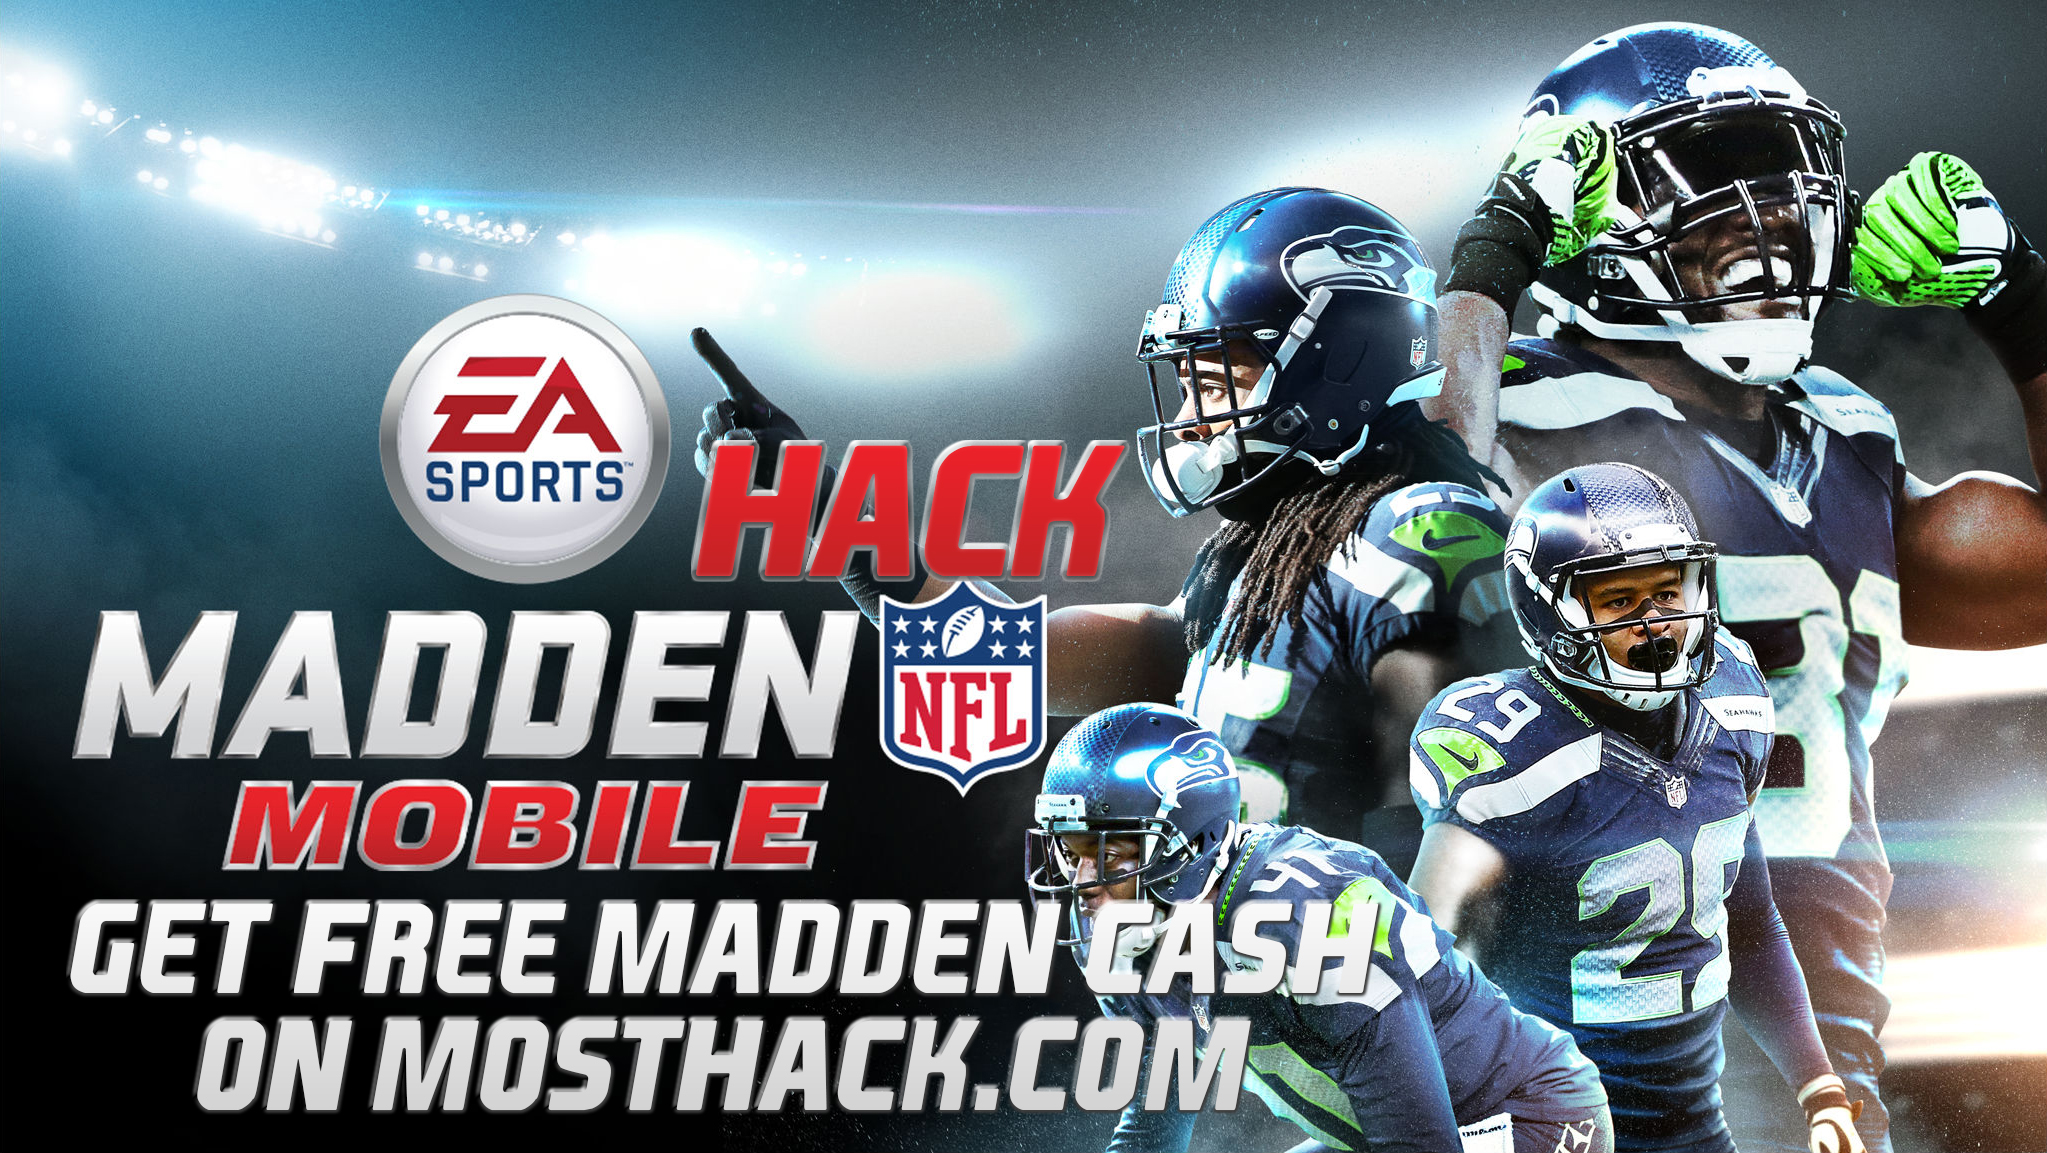 Image currently unavailable. Go to www.generator.mosthack.com and choose Madden NFL Overdrive image, you will be redirect to Madden NFL Overdrive Generator site.